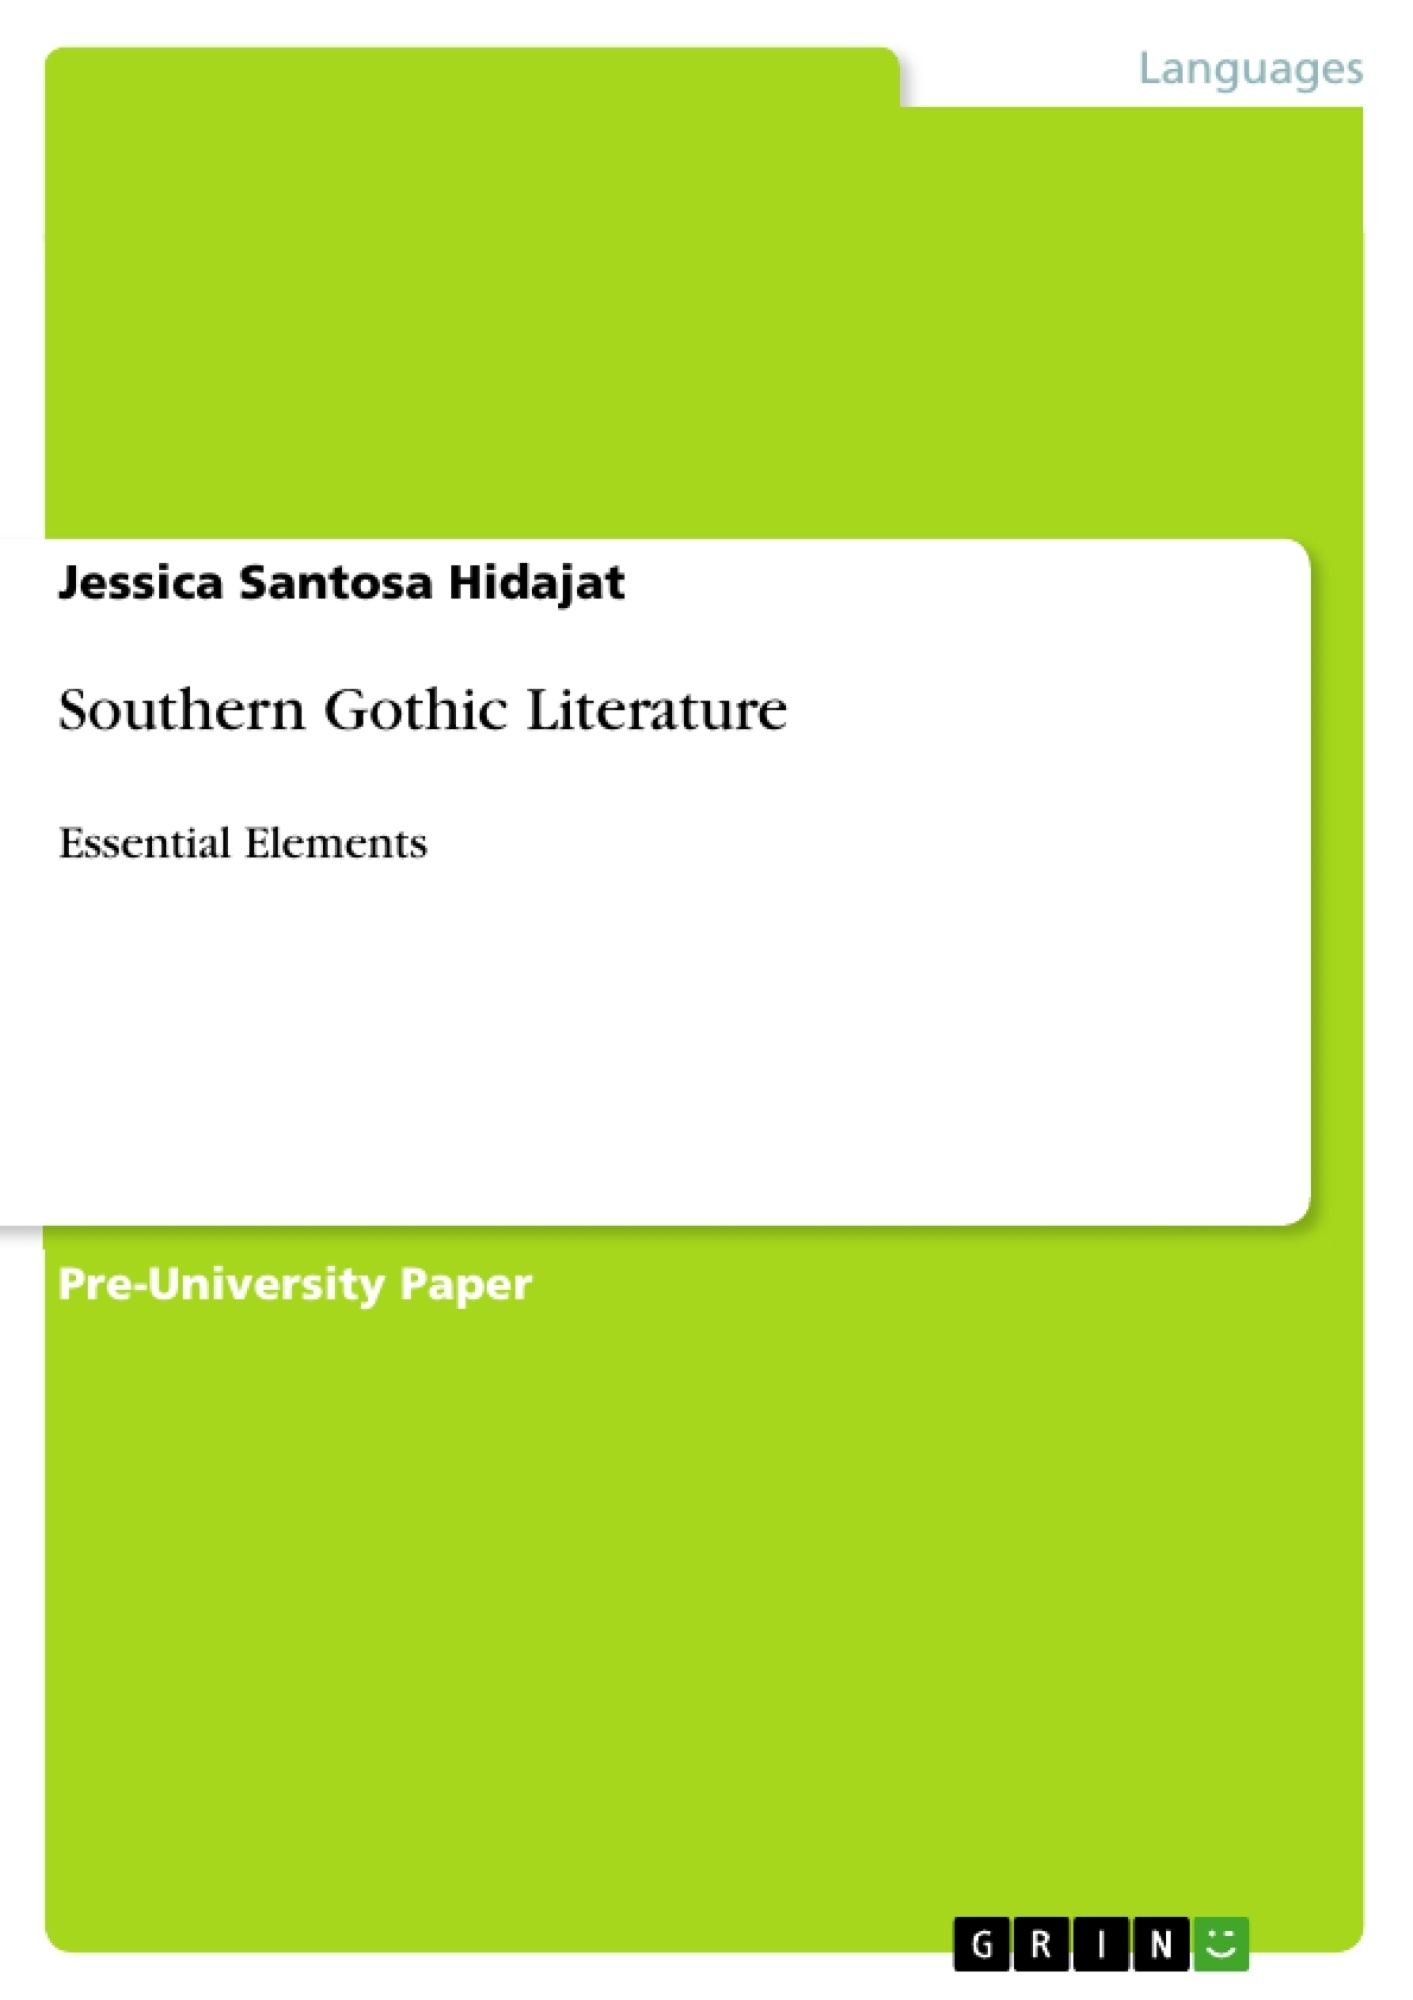 Title: Southern Gothic Literature